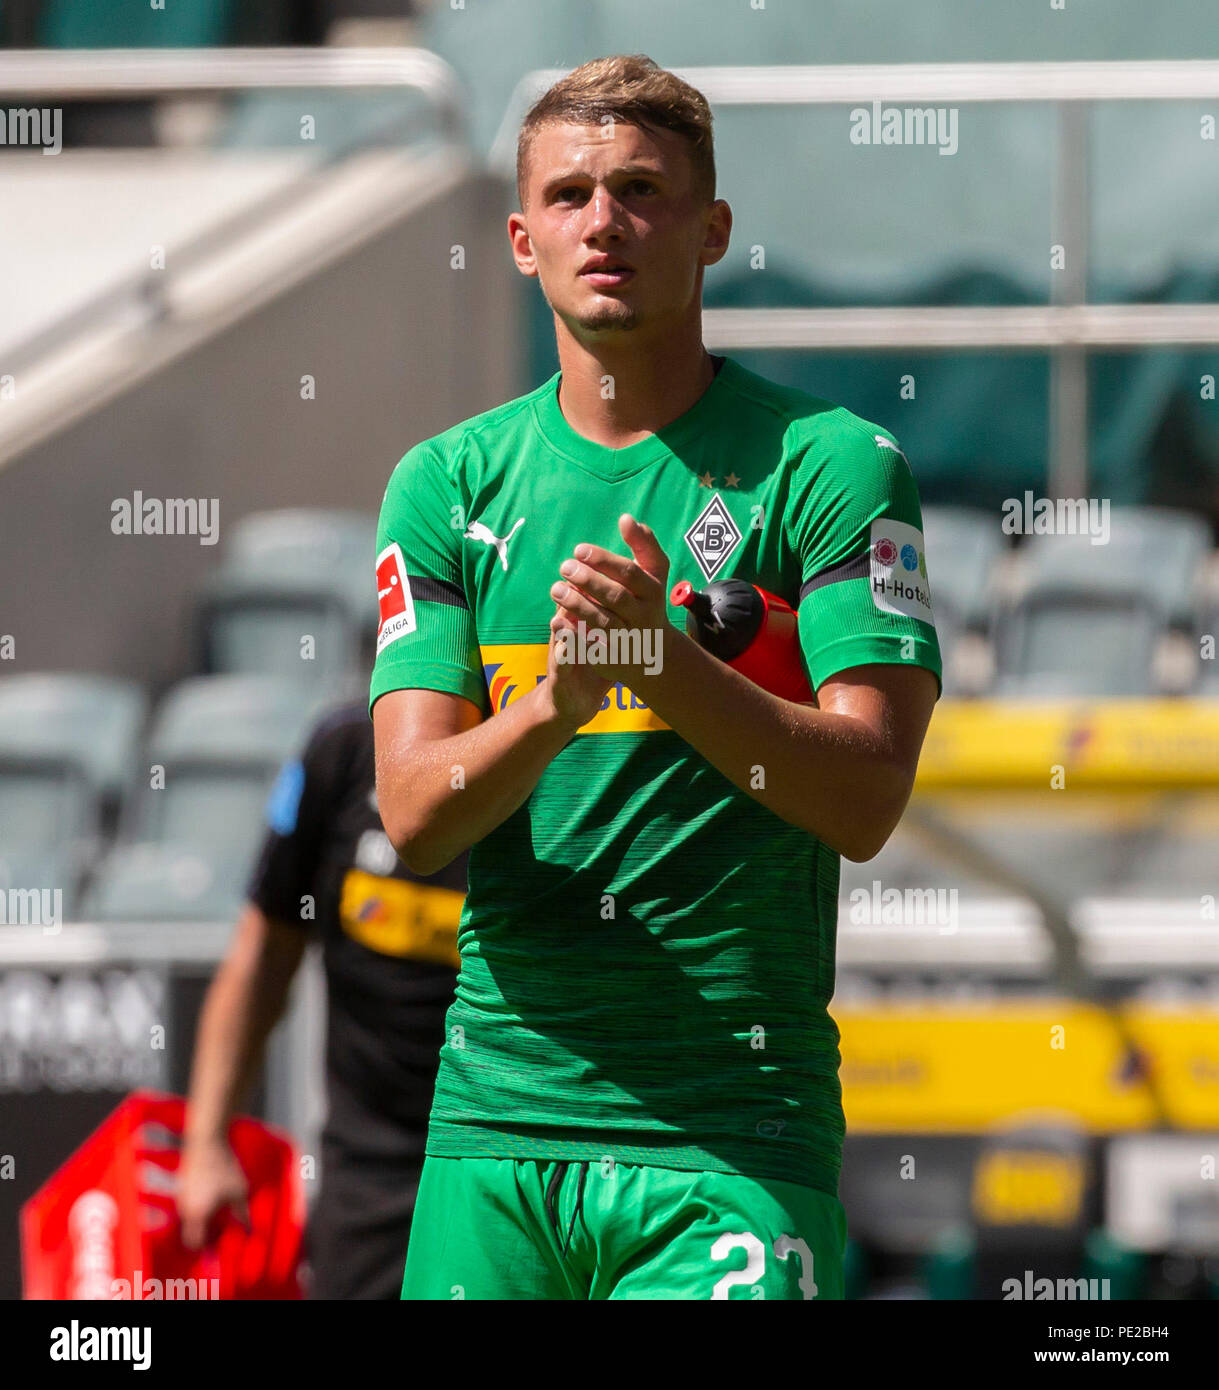 Moenchengladbach, Germany August 12 2018, friendly match, Borussia Moenchengladbach vs FC Wegberg-Beeck: Mickael Cuisance (BMG) schaut.                Credit: Juergen Schwarz/Alamy Live News - Stock Image